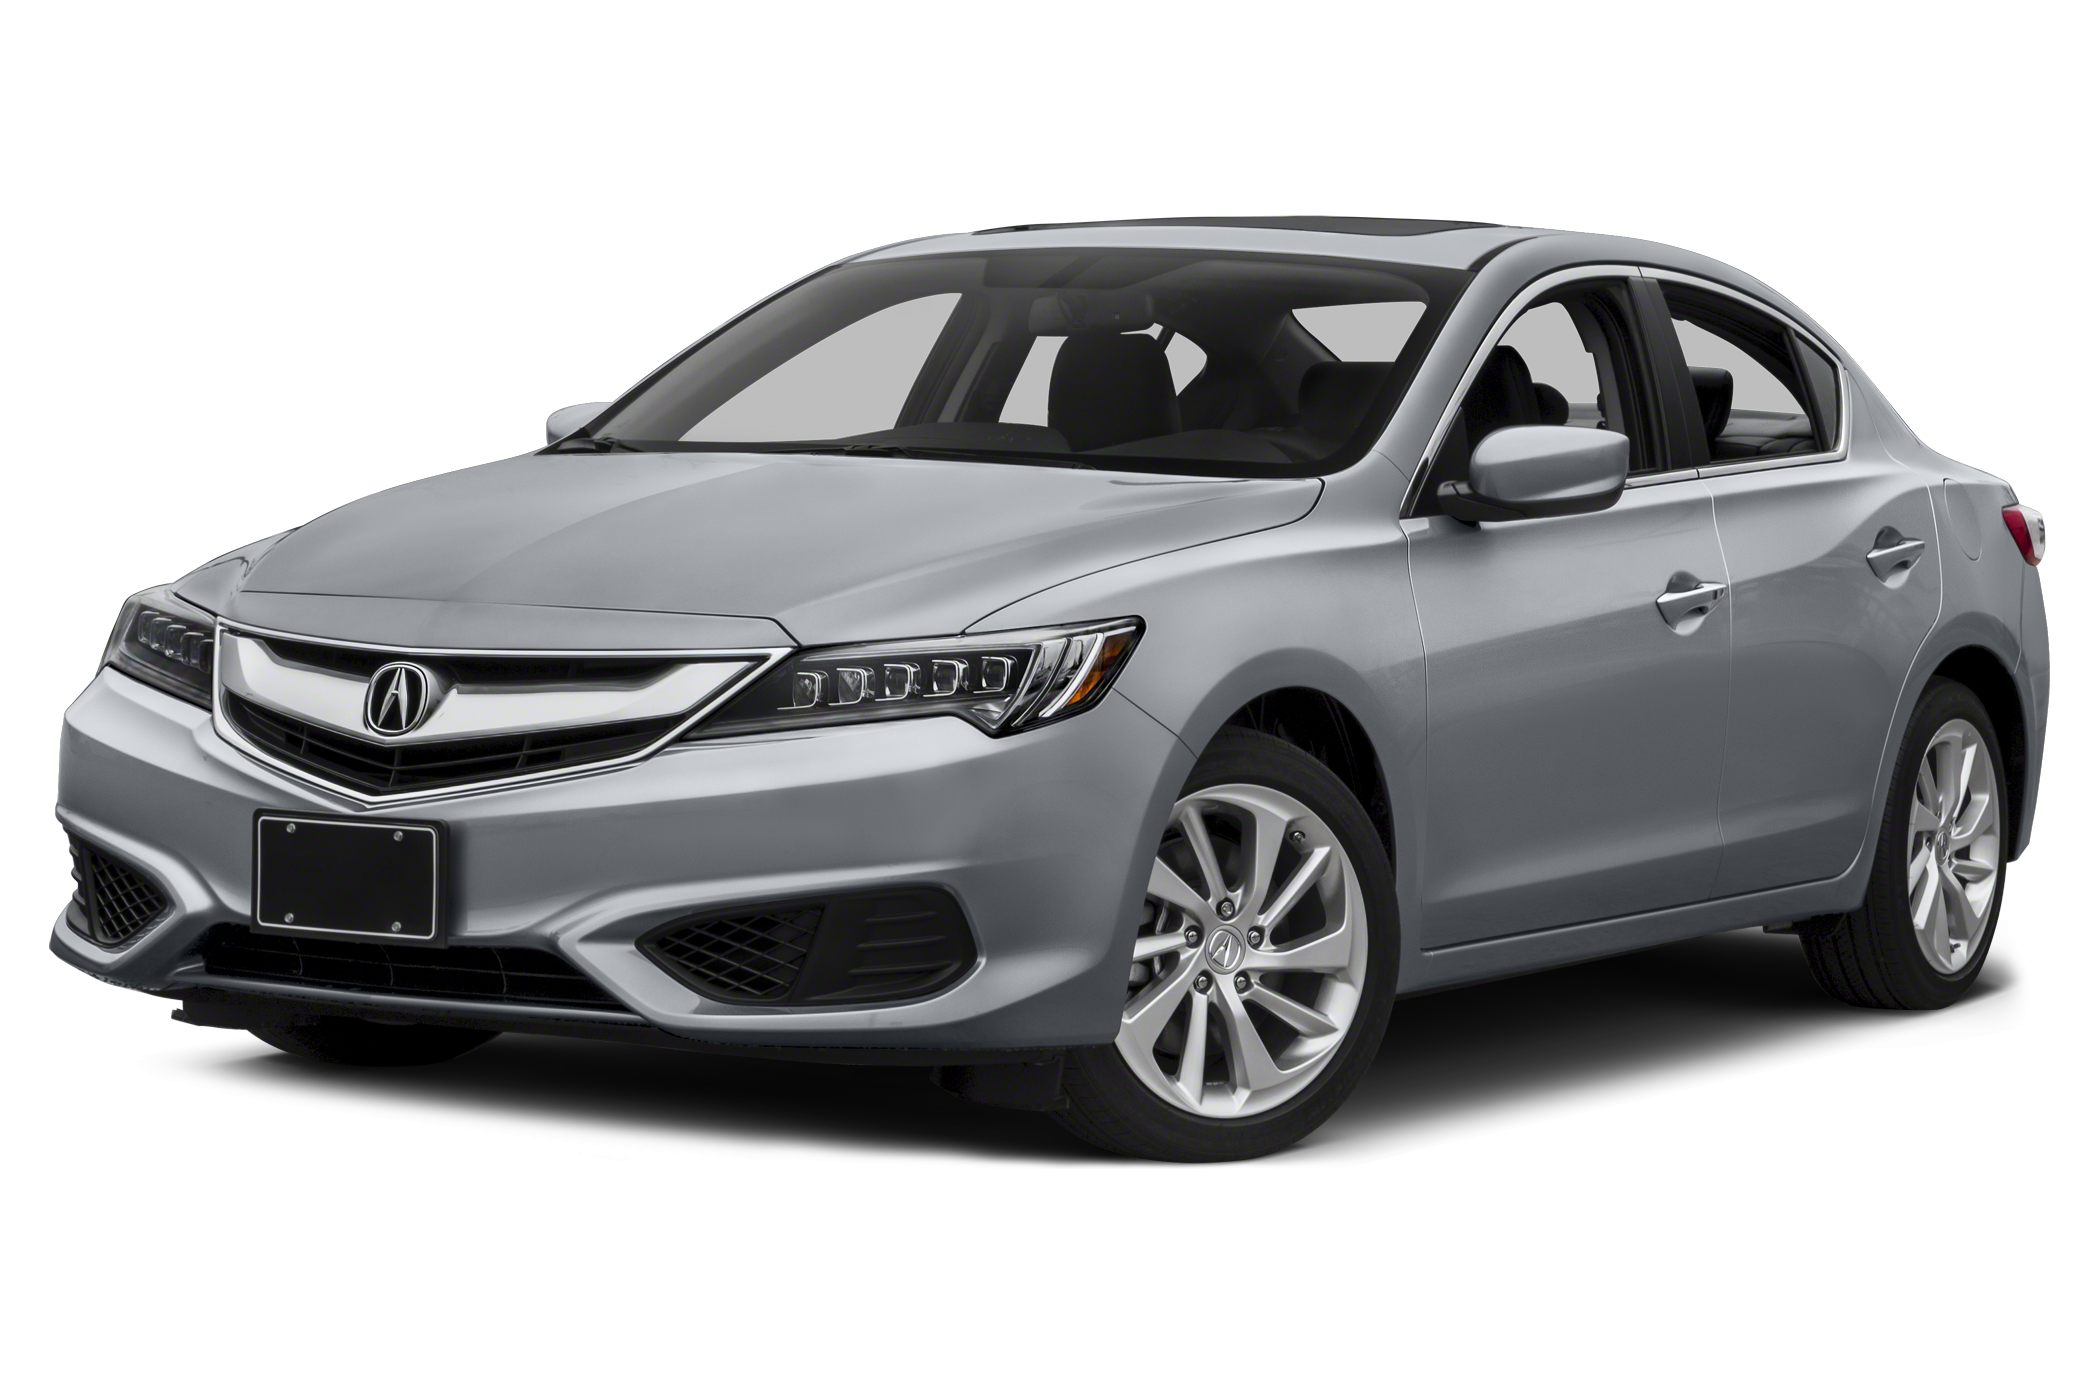 2016 Acura ILX 24 Premium Miles 3Color Polished Metal Metallic Stock A012087 VIN 19UDE2F77G